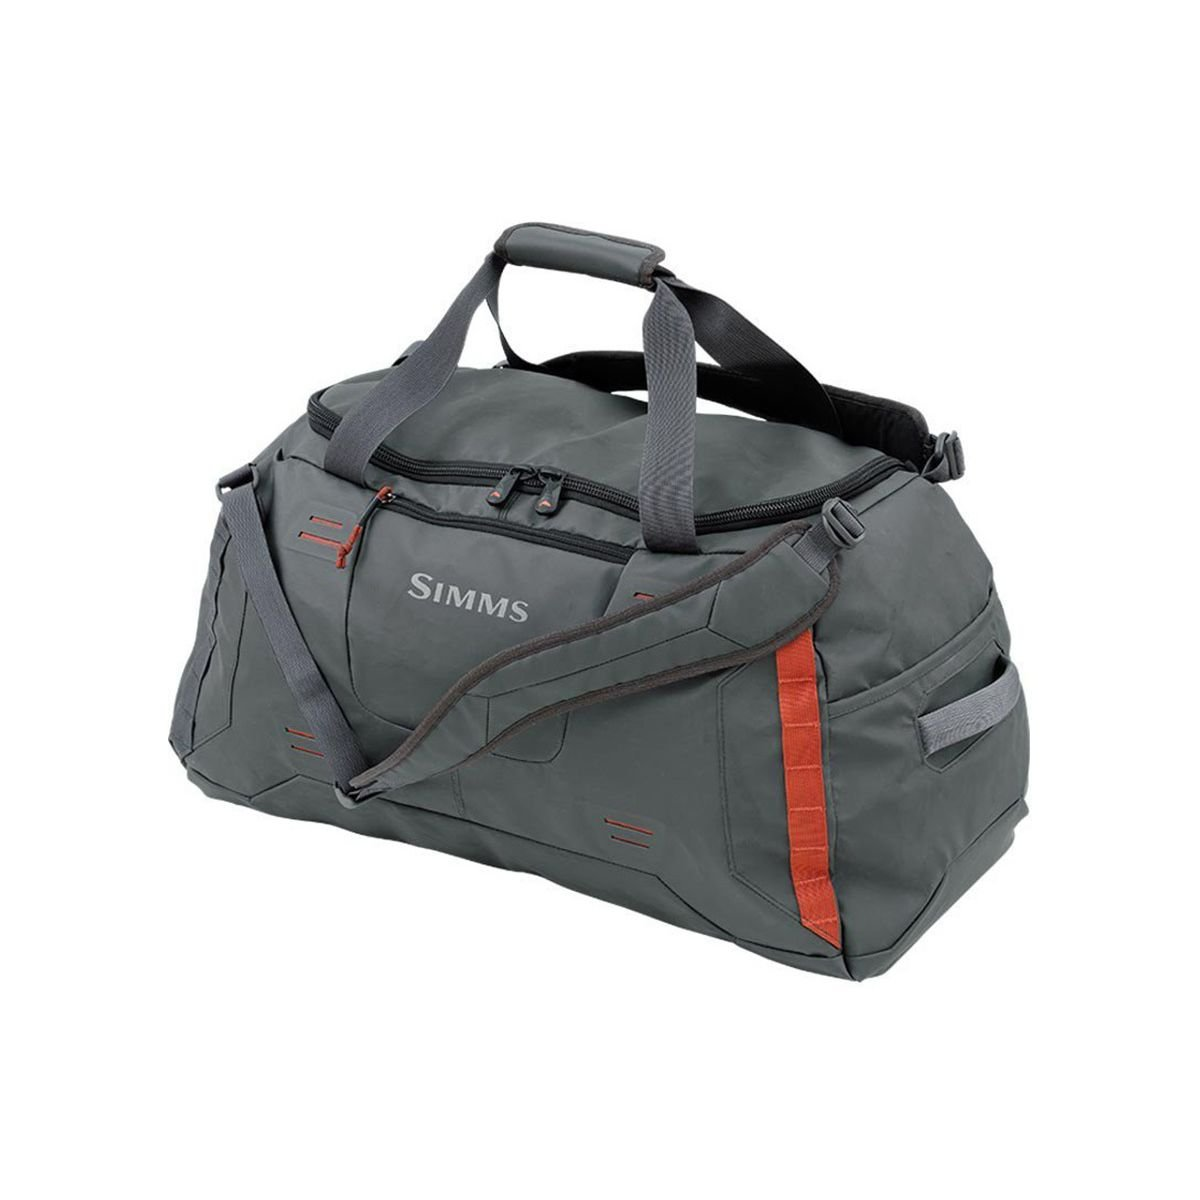 Simms Bountyハンター50 Duffel Bag – 3051 cu in One Size コール B013RMLU74